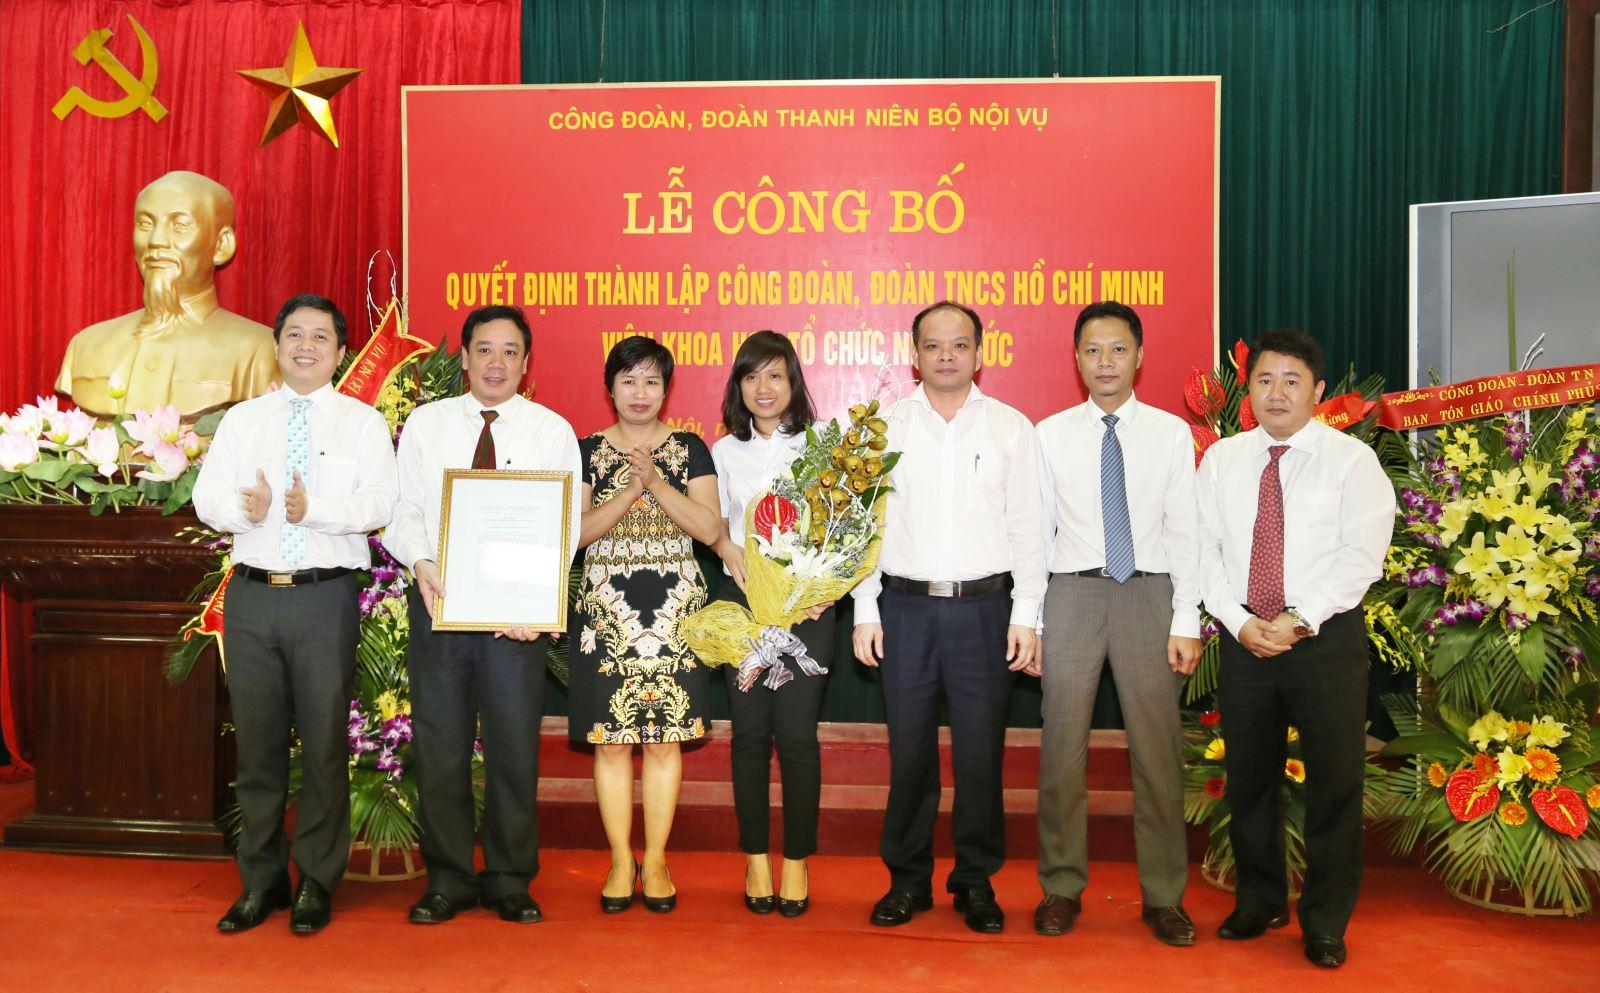 Ceremony to announce Decisions on establishing the Trade Union and the Ho Chi Minh Communist Youth Union of the Institute for State Organizational Sciences